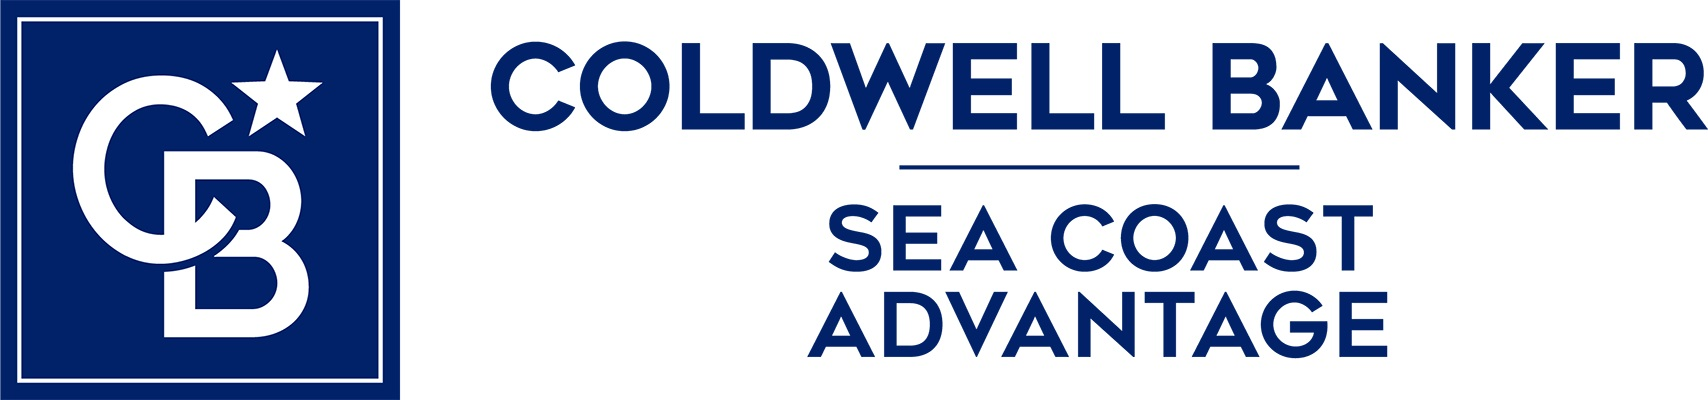 Tad Scott - Coldwell Banker Sea Coast Advantage Realty